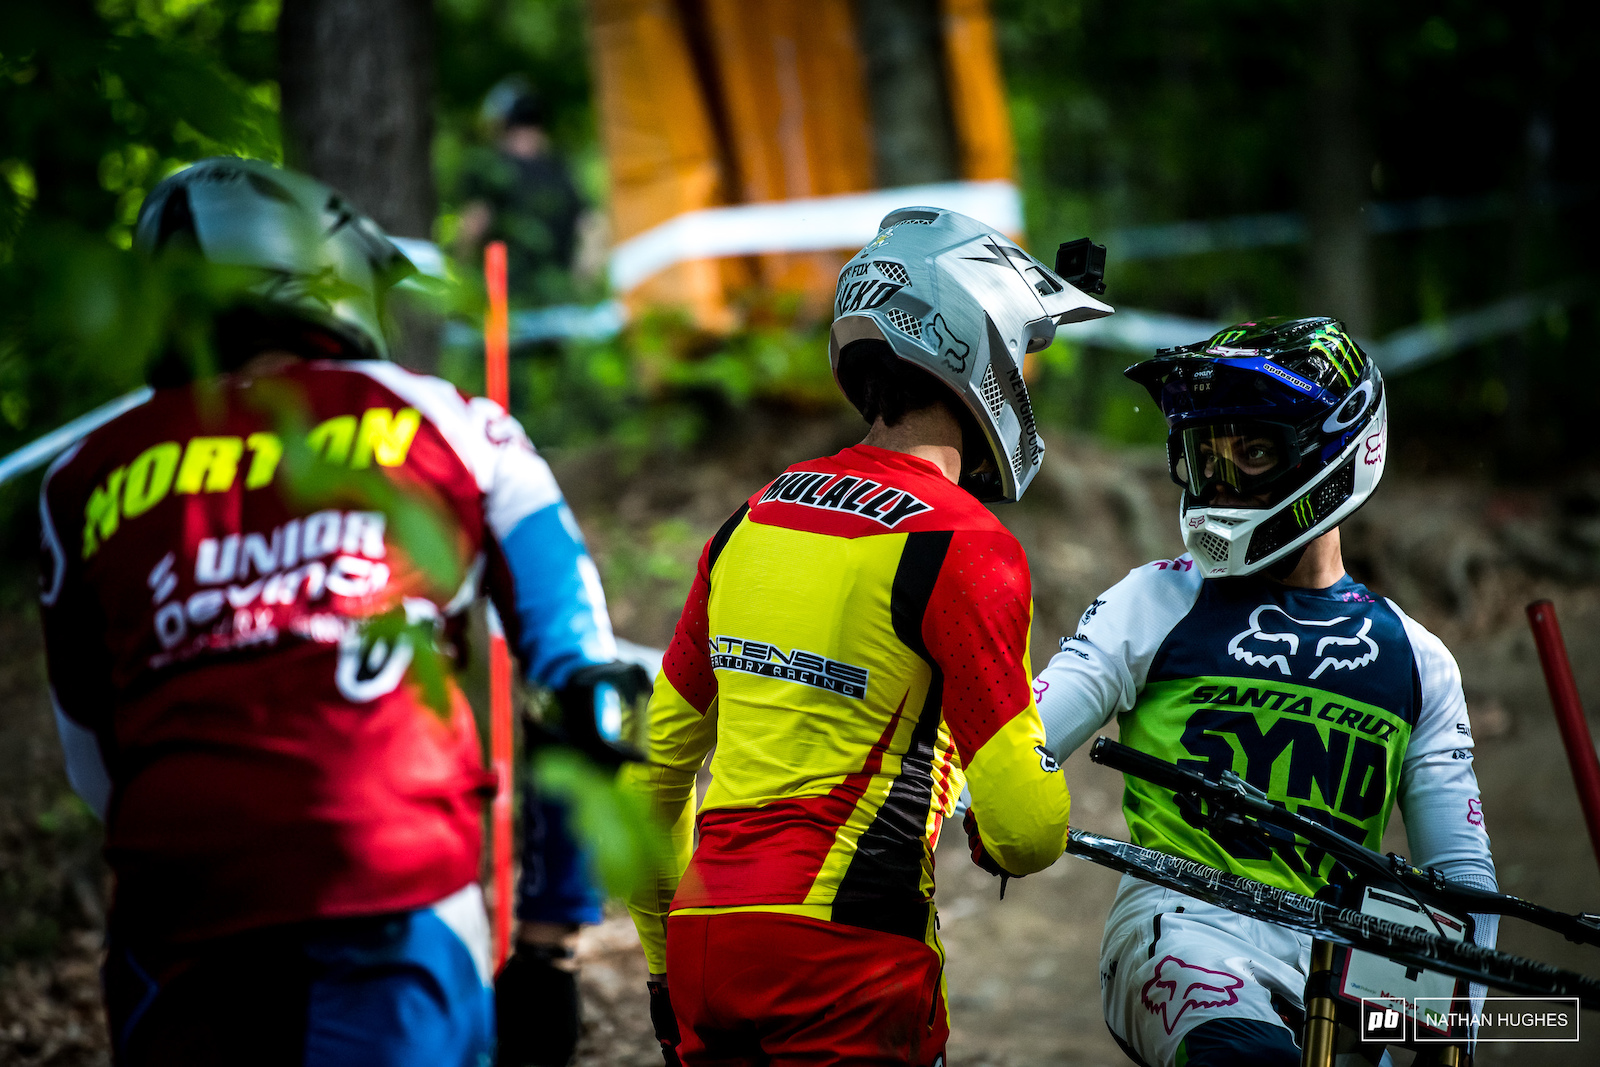 Still lots of mates to catch up with in the woods at round 1.